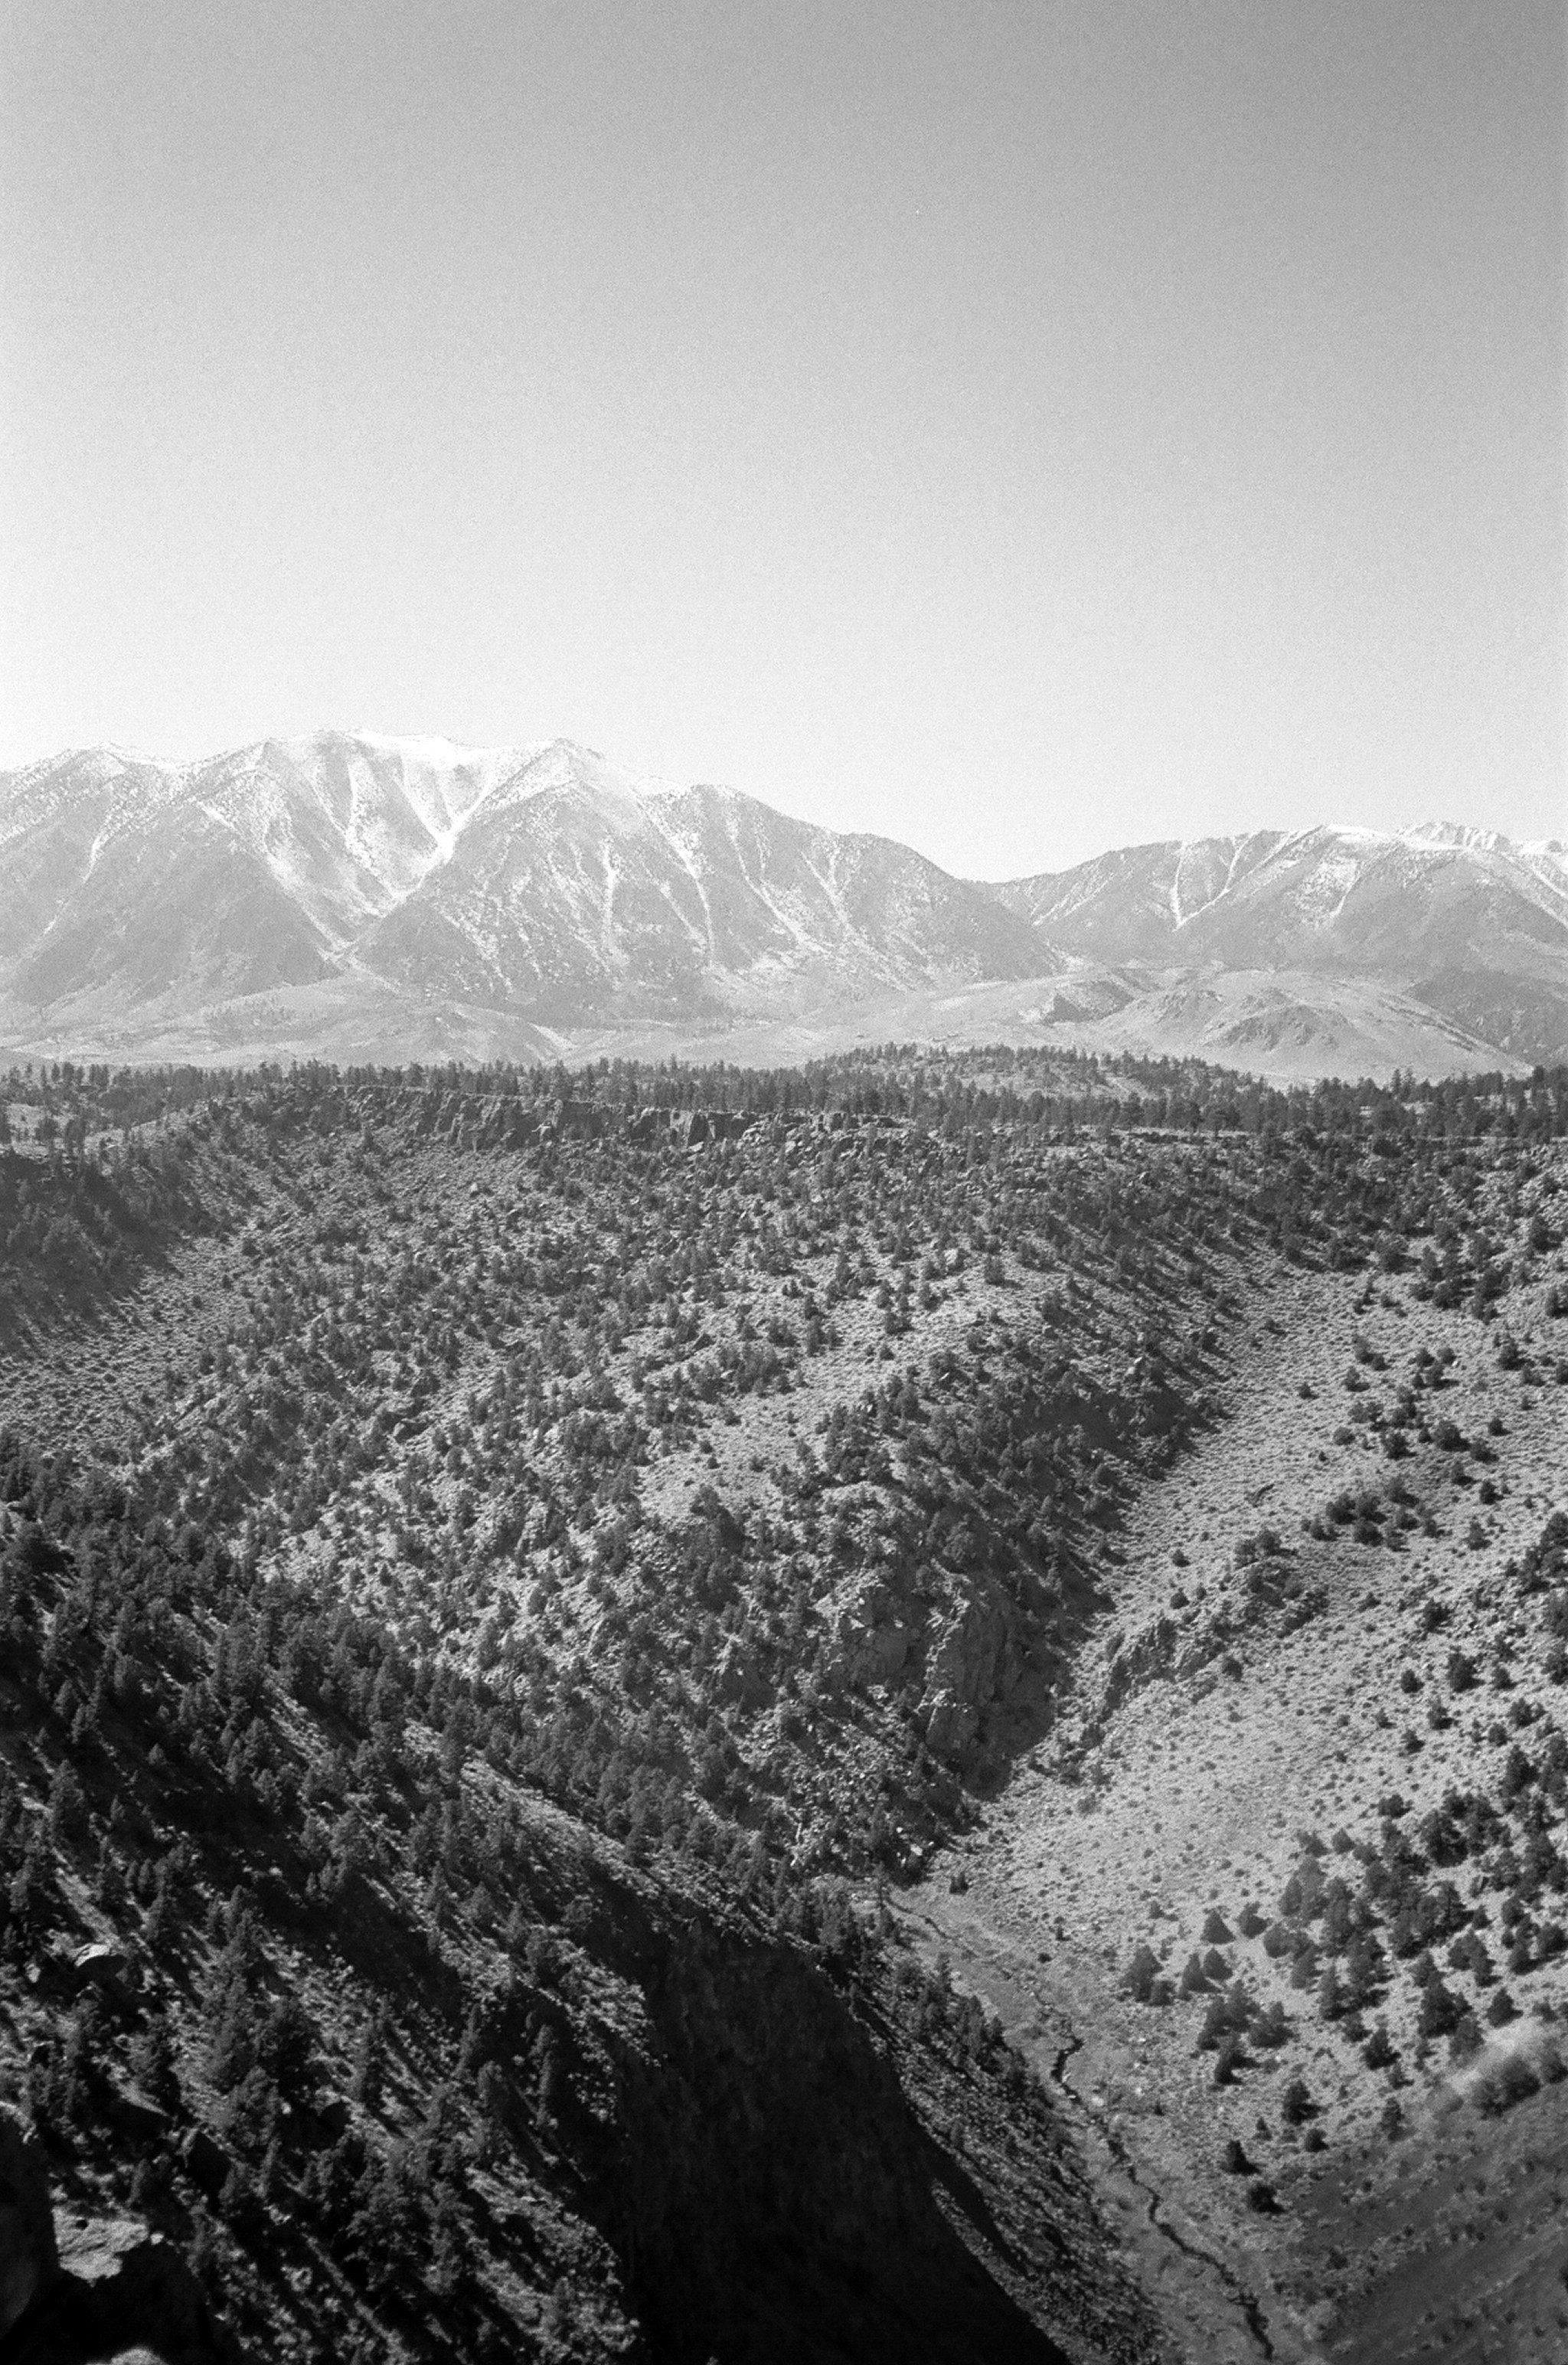 Owens River Gorge from the top